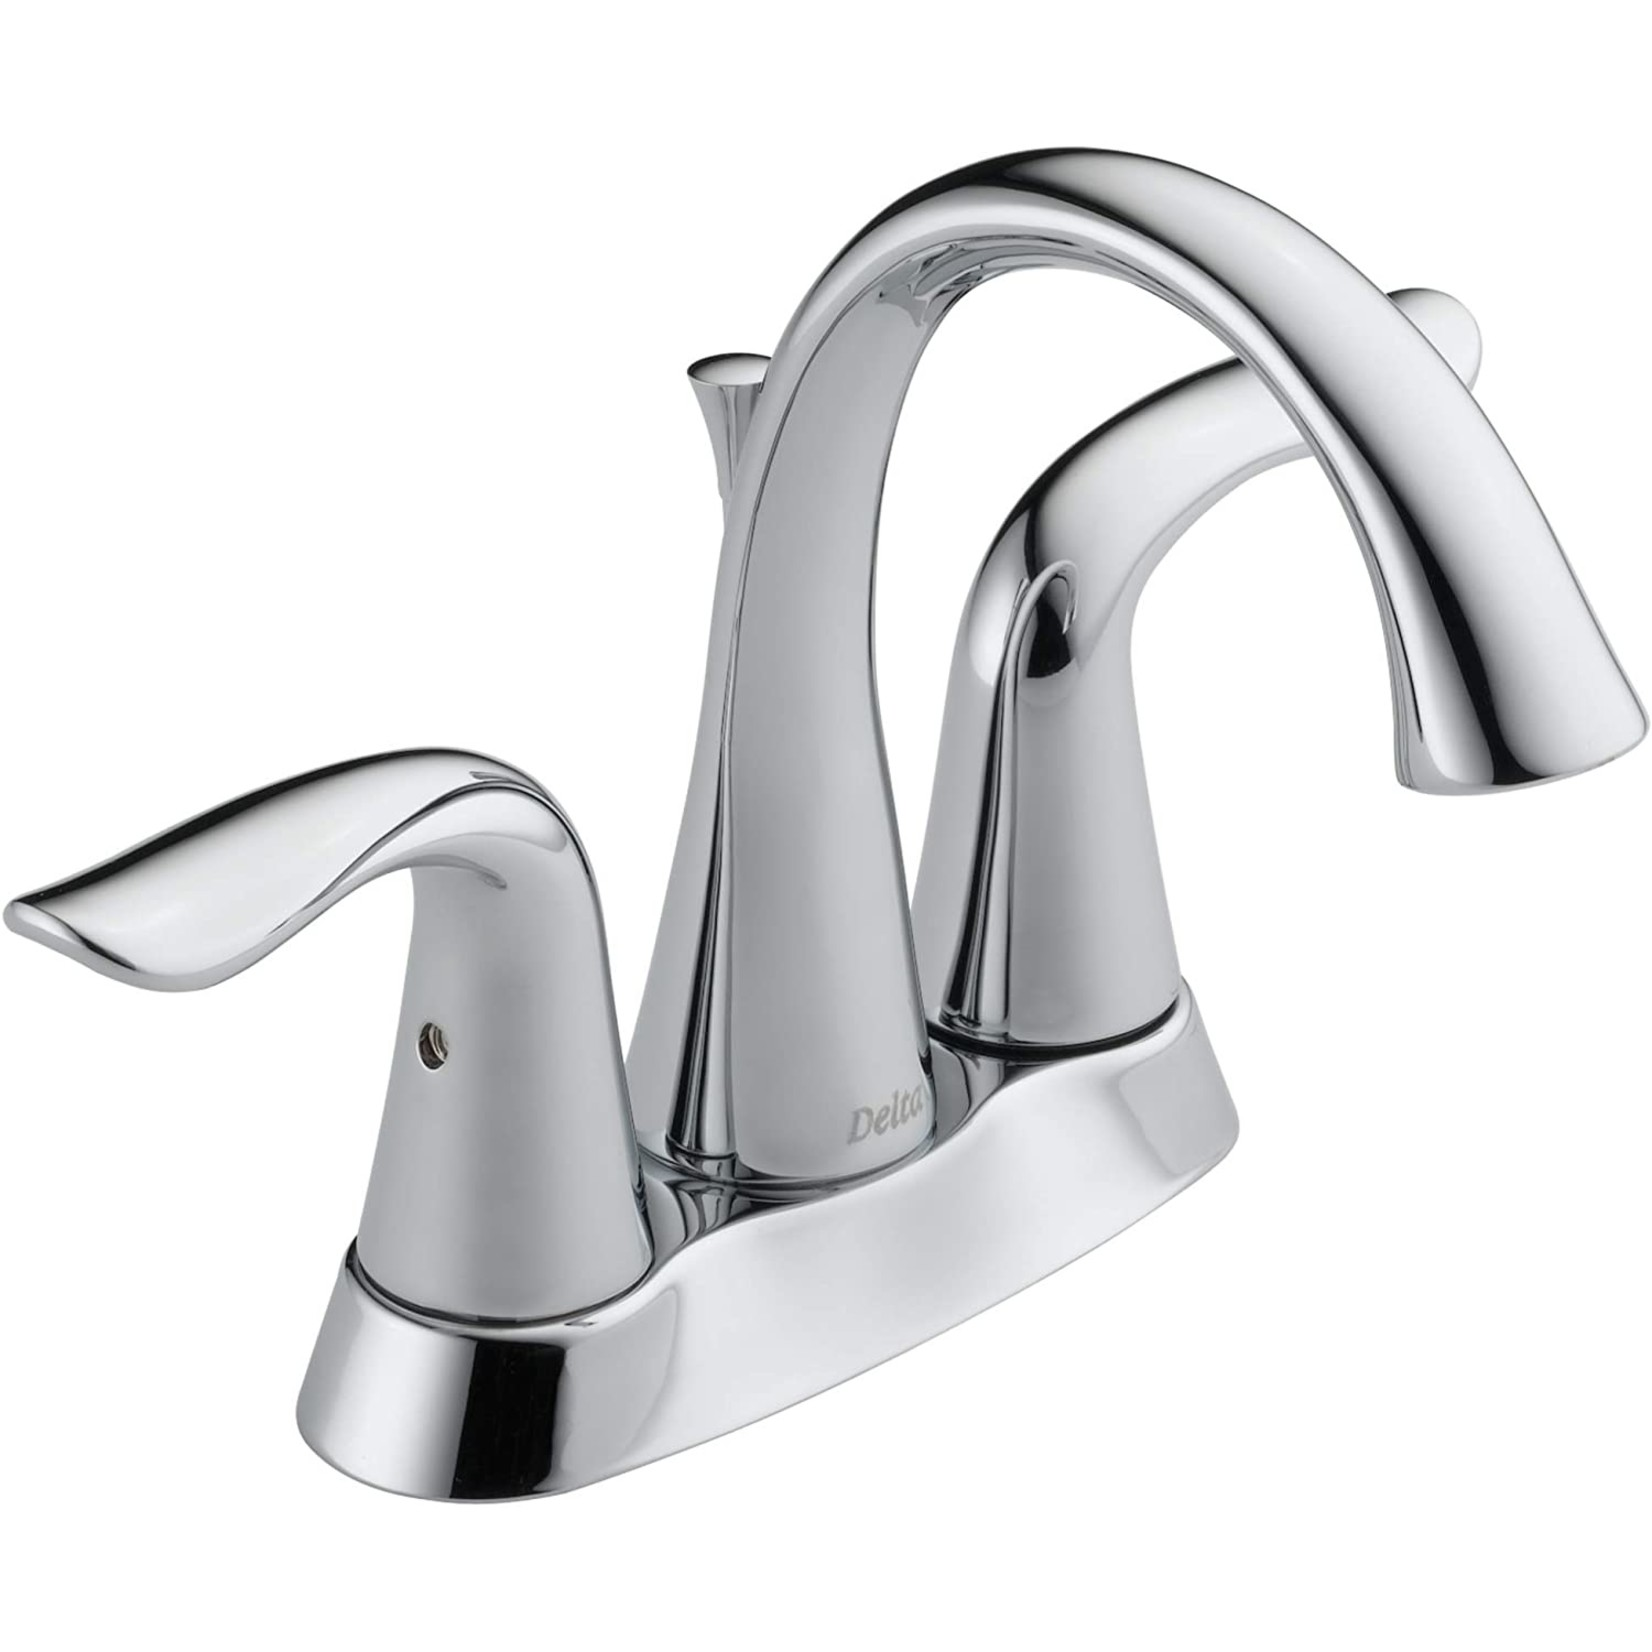 *Lahara Centerset Bathroom Faucet with Drain Assembly and Diamond Seal Technology - Stainless Steel